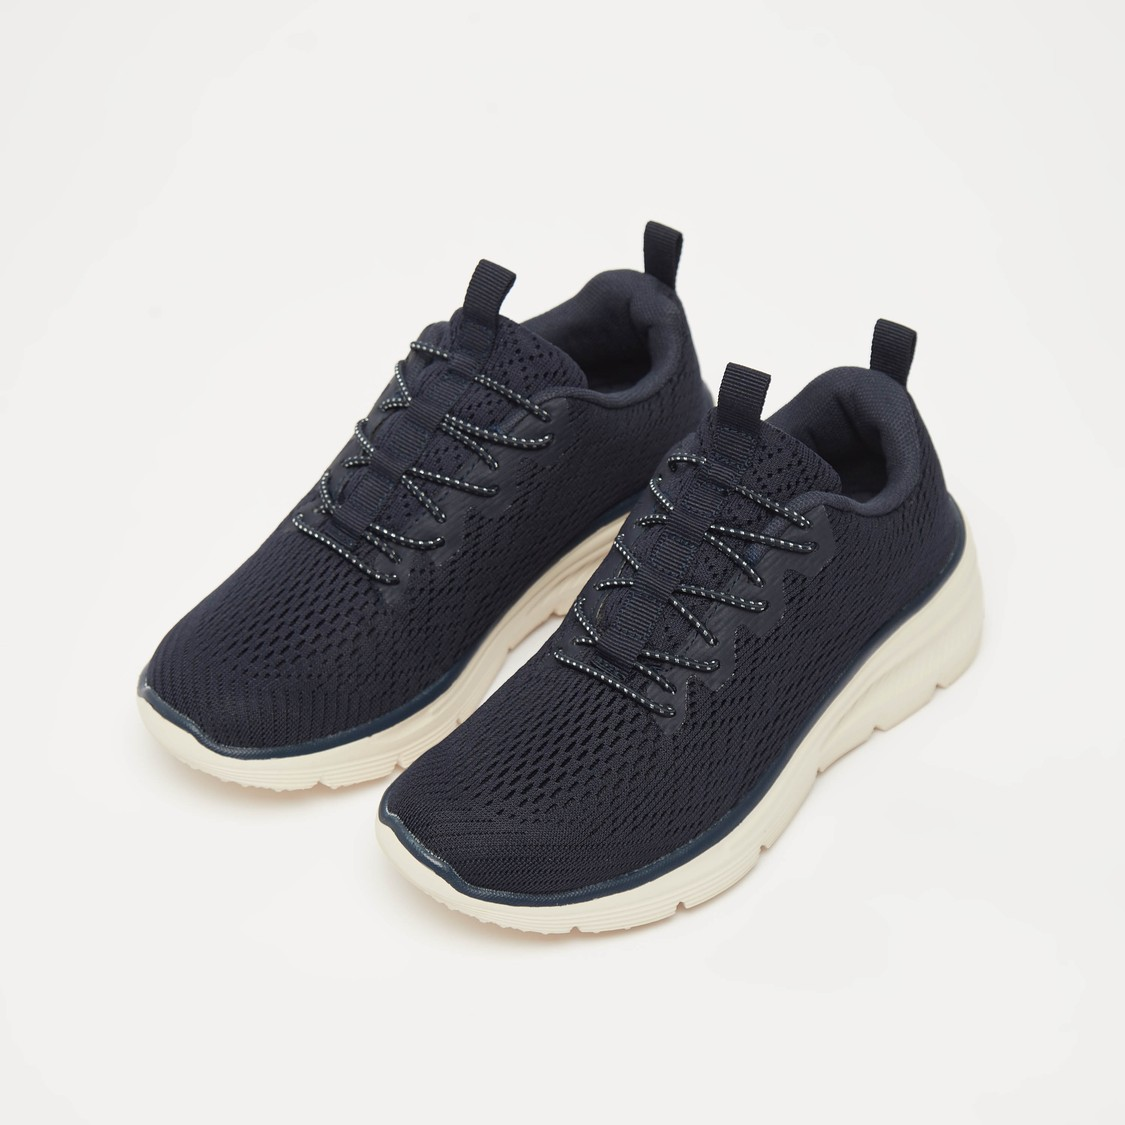 Textured Slip-On Sports Shoes with Pull Tab Detail